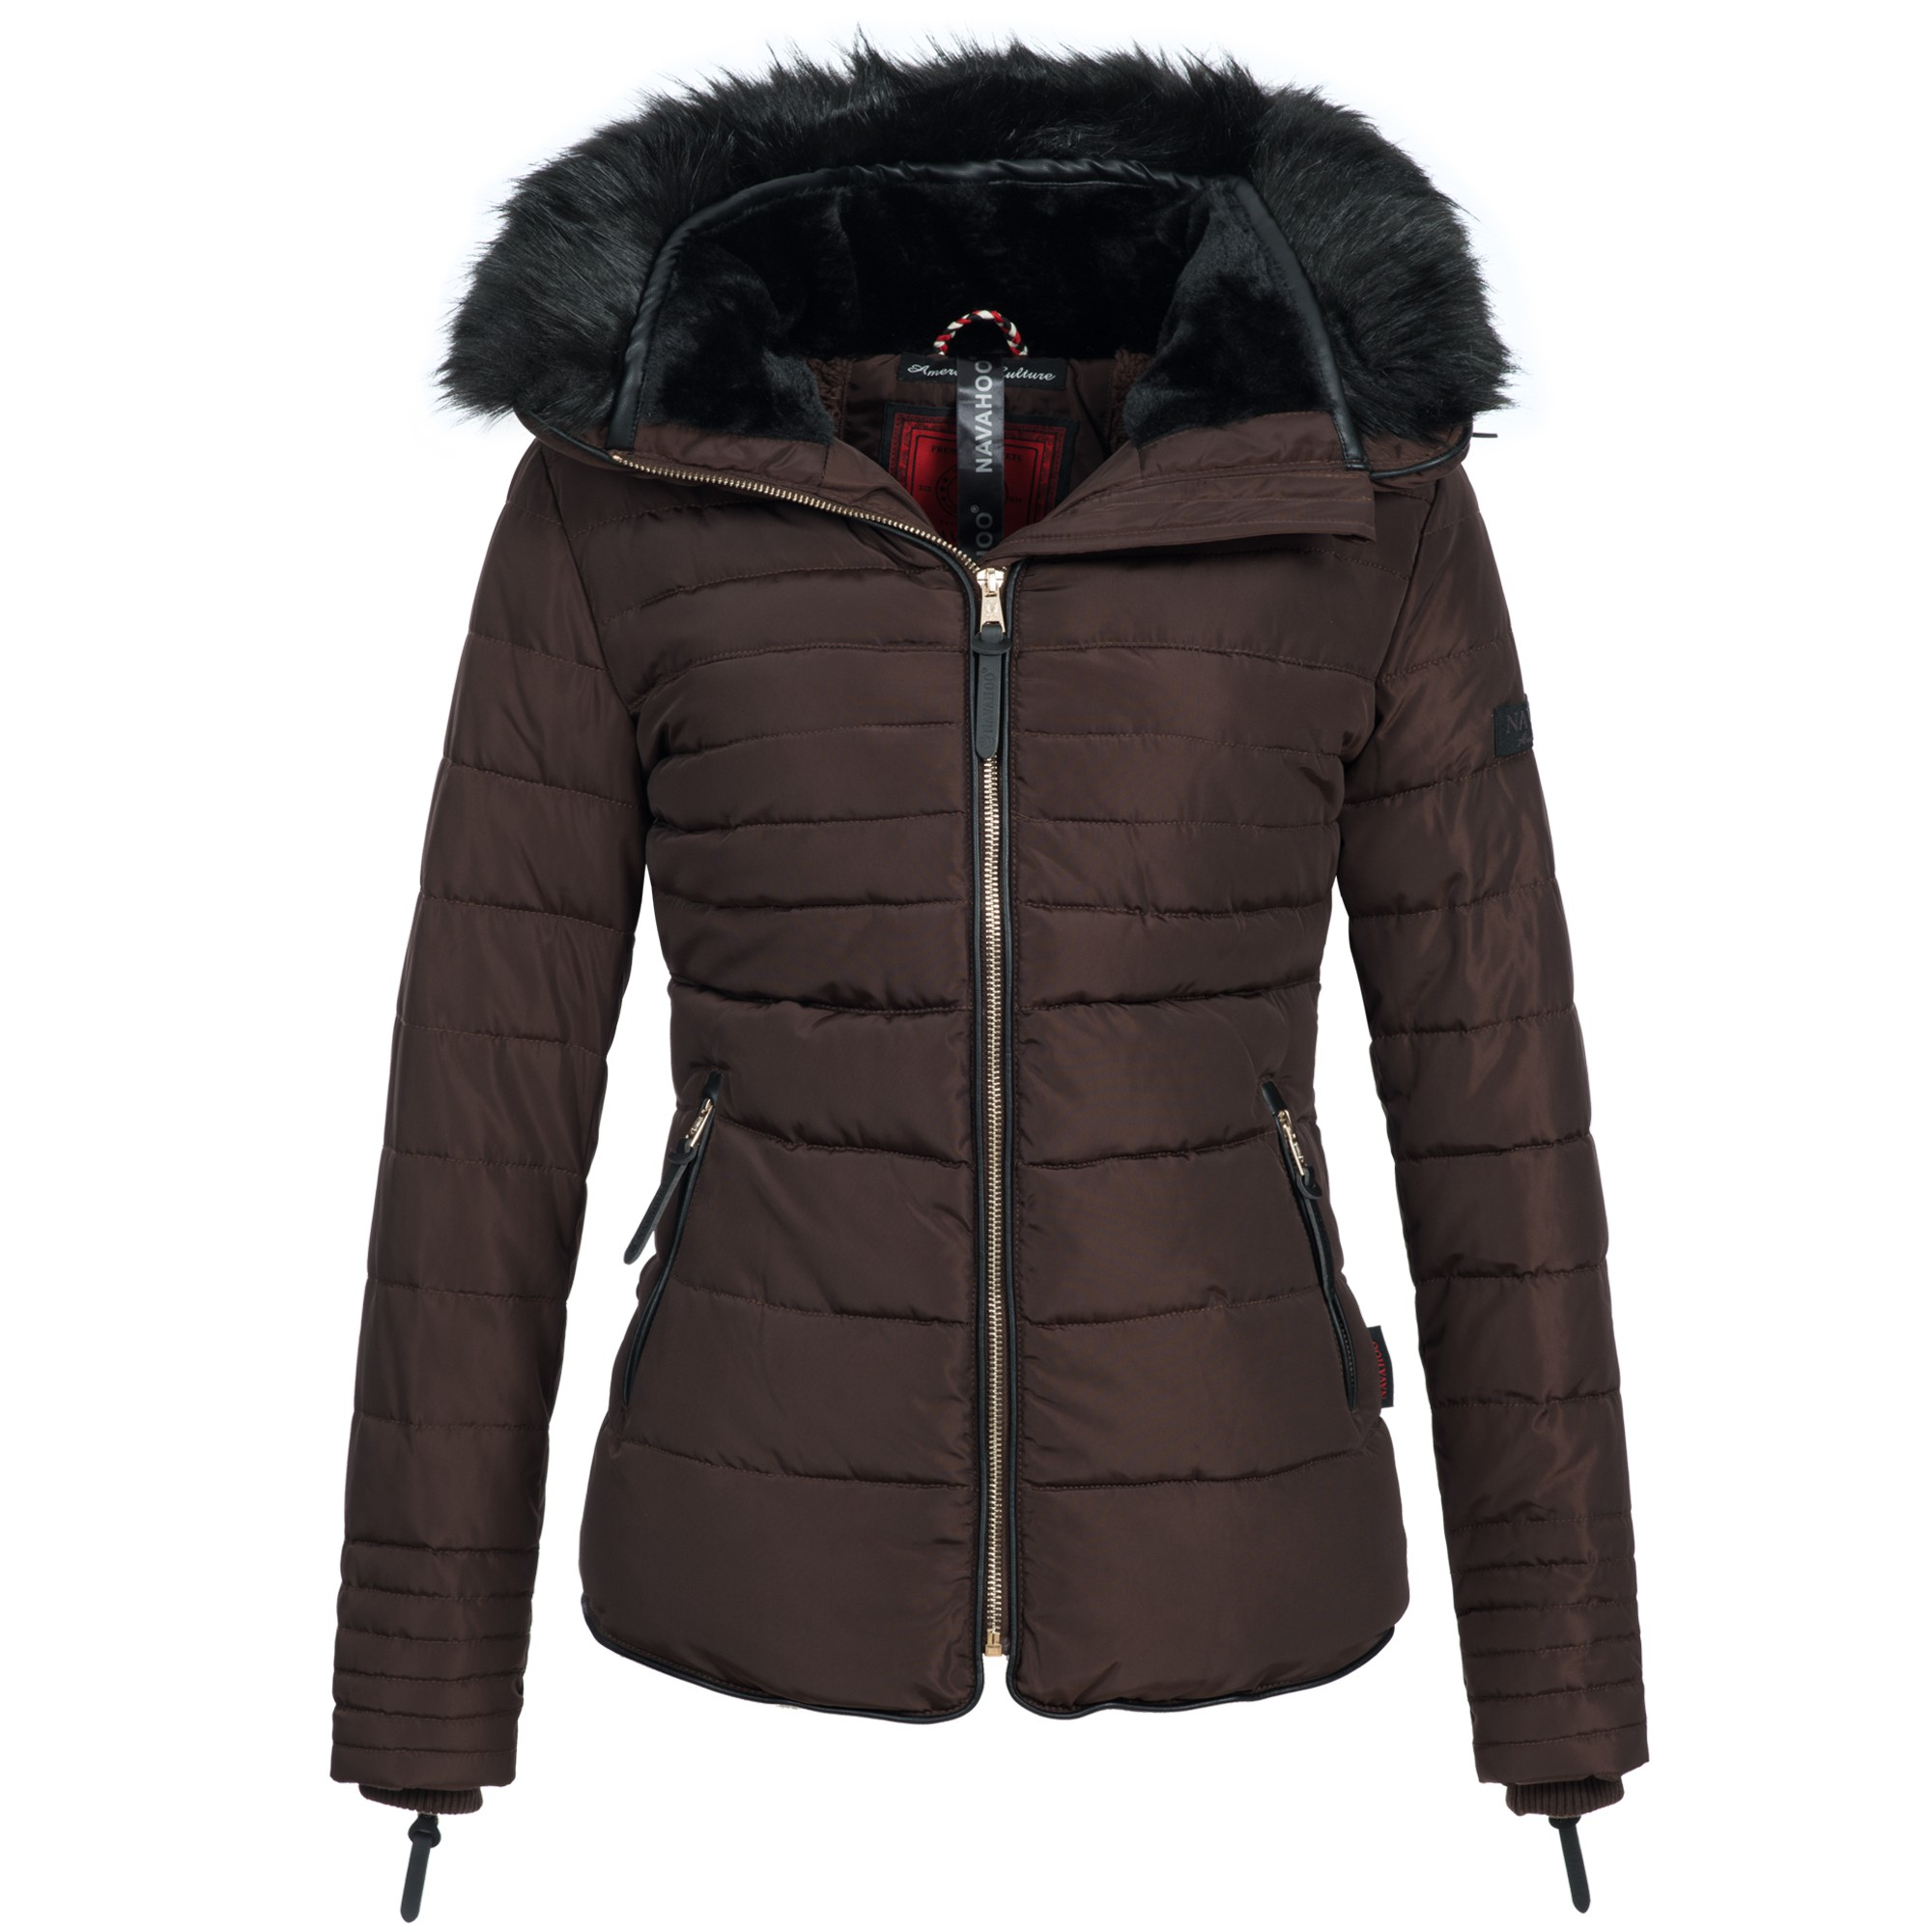 navahoo tamara damen jacke parka winterjacke steppjacke. Black Bedroom Furniture Sets. Home Design Ideas